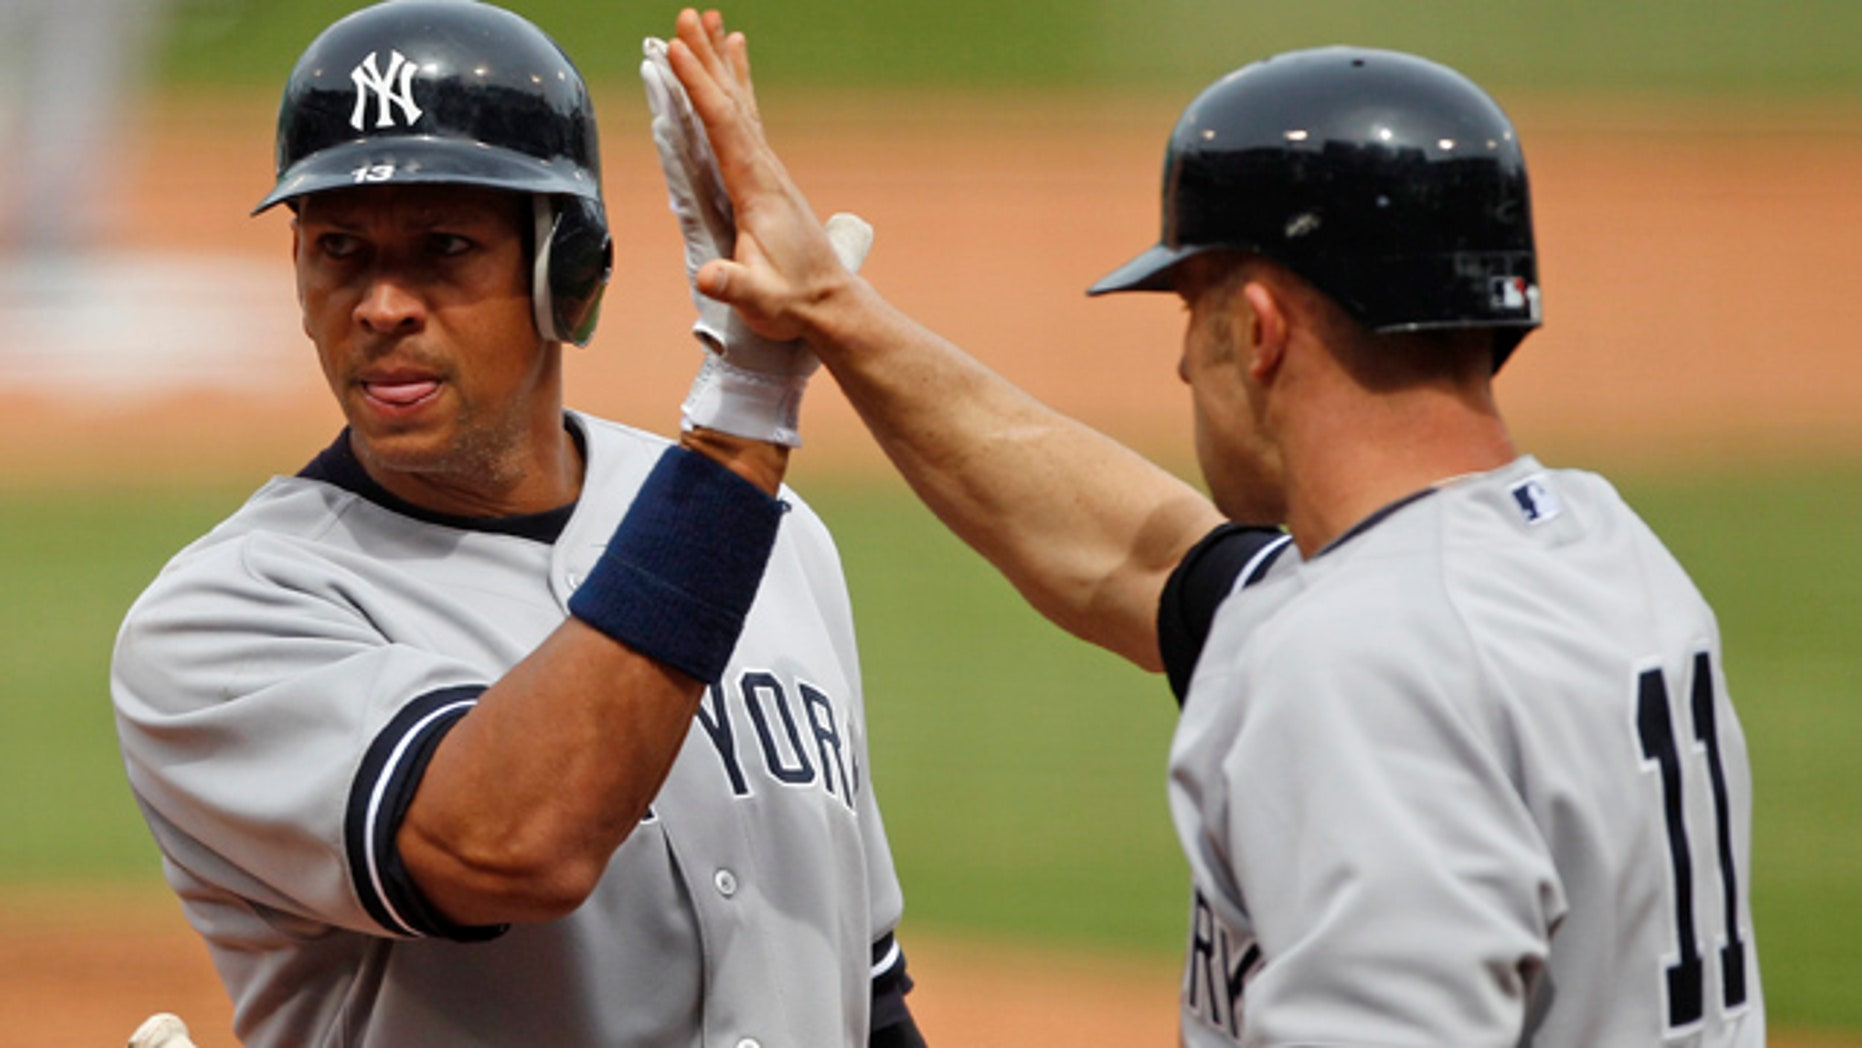 April 8, 2011: New York Yankees Alex Rodriguez, left, celebrates with teammate Brett Gardner after being driven home on a double by Robinson Cano during the first inning of a baseball game at Fenway Park in Boston.